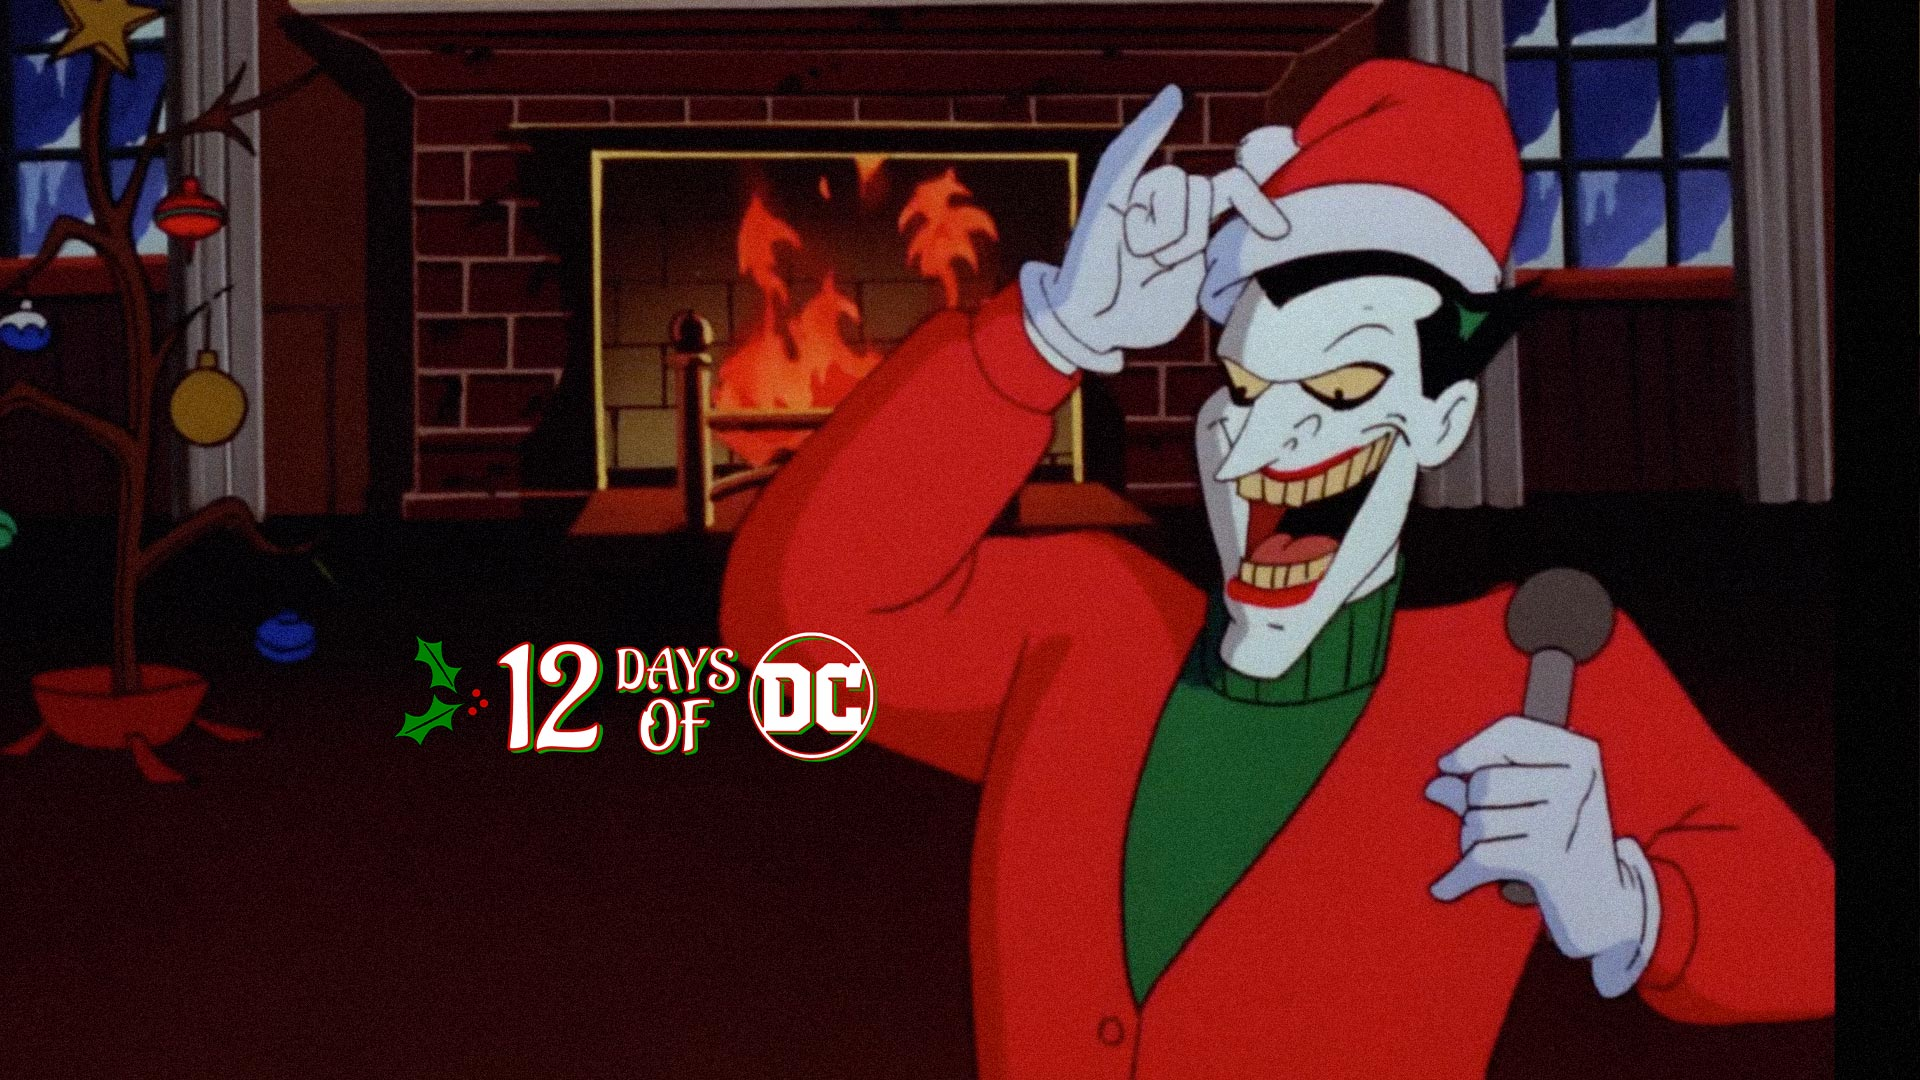 dcu-12days-joker_MH_v1.jpg